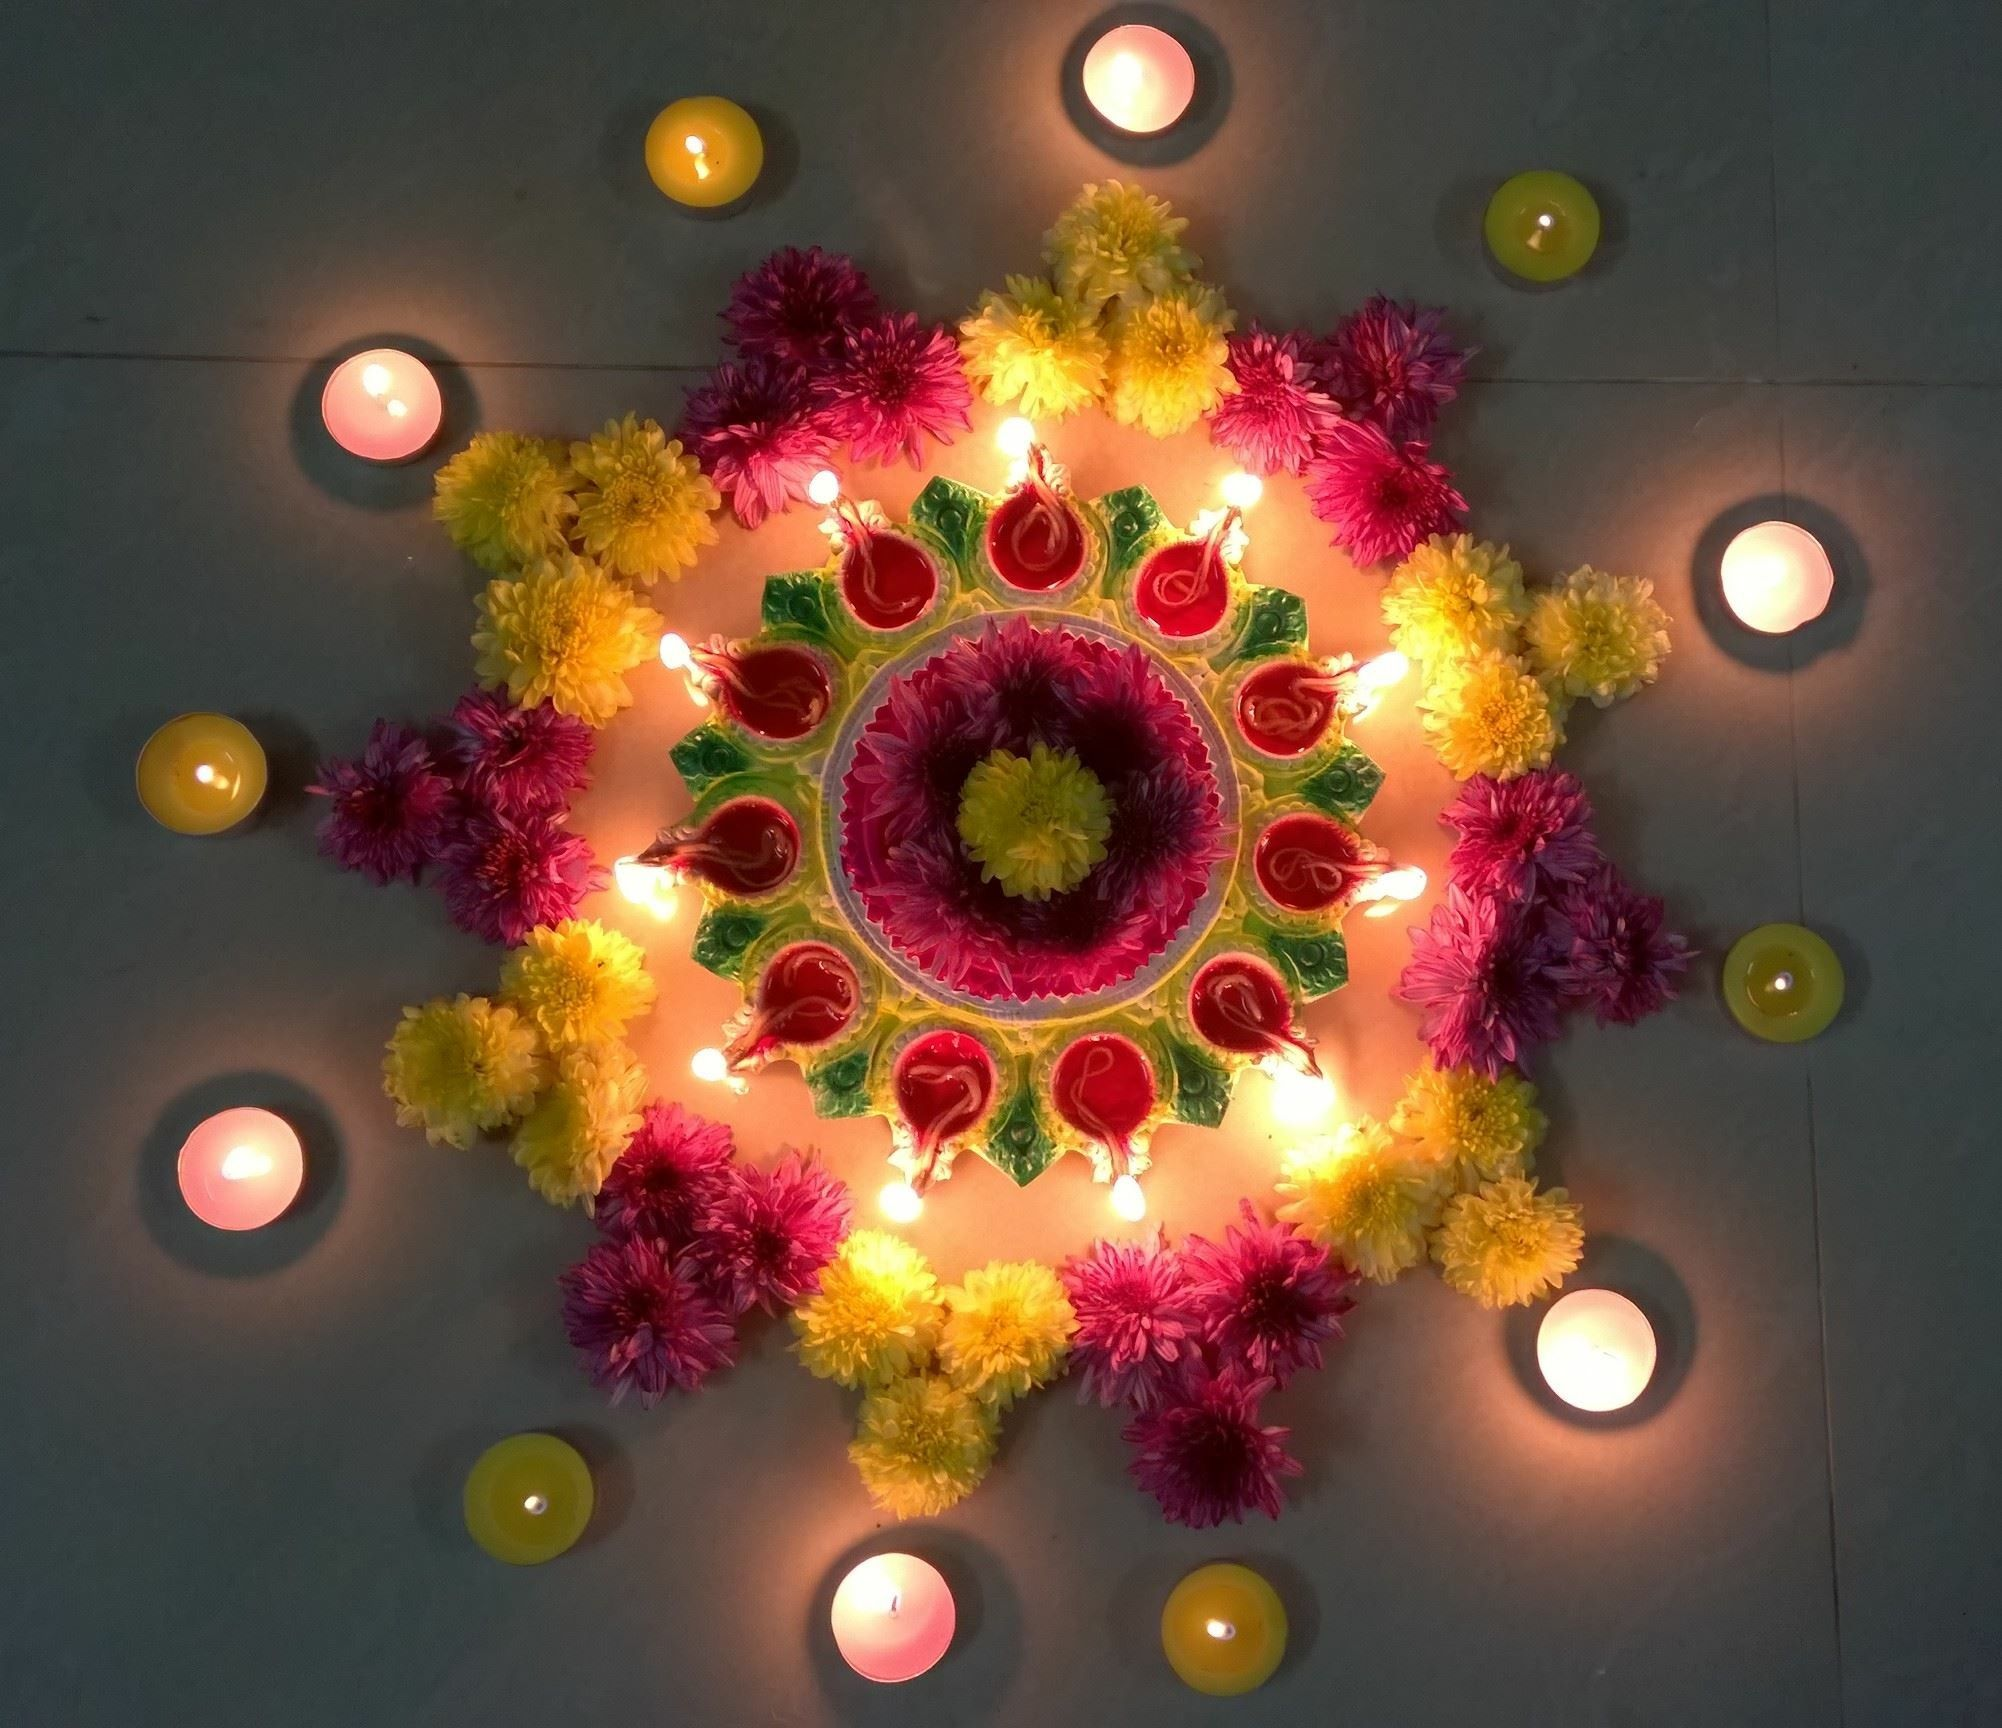 Beautiful n unique flower design for festival Diwali